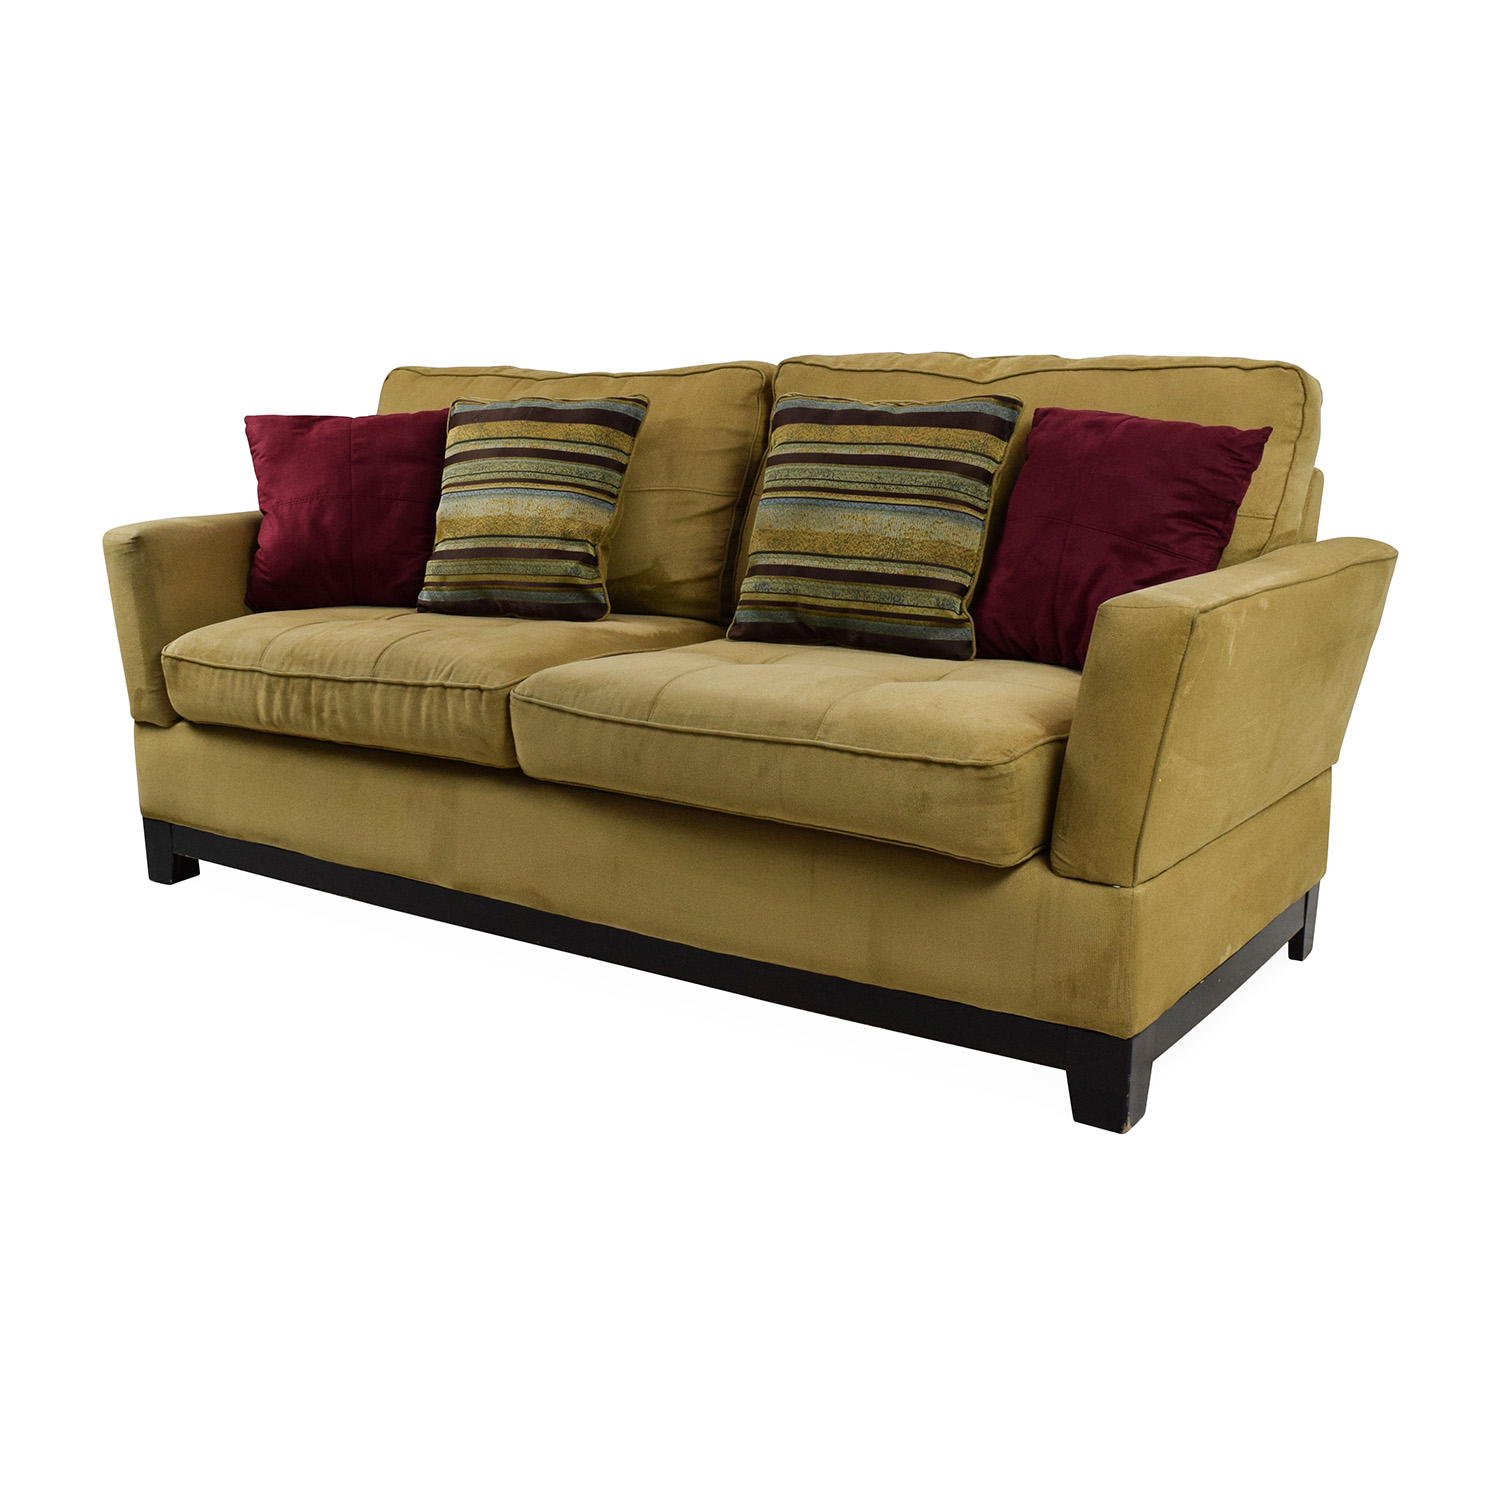 Hampton sofa in coral stripe from jennifer convertibles for Sectional sofa jennifer convertible